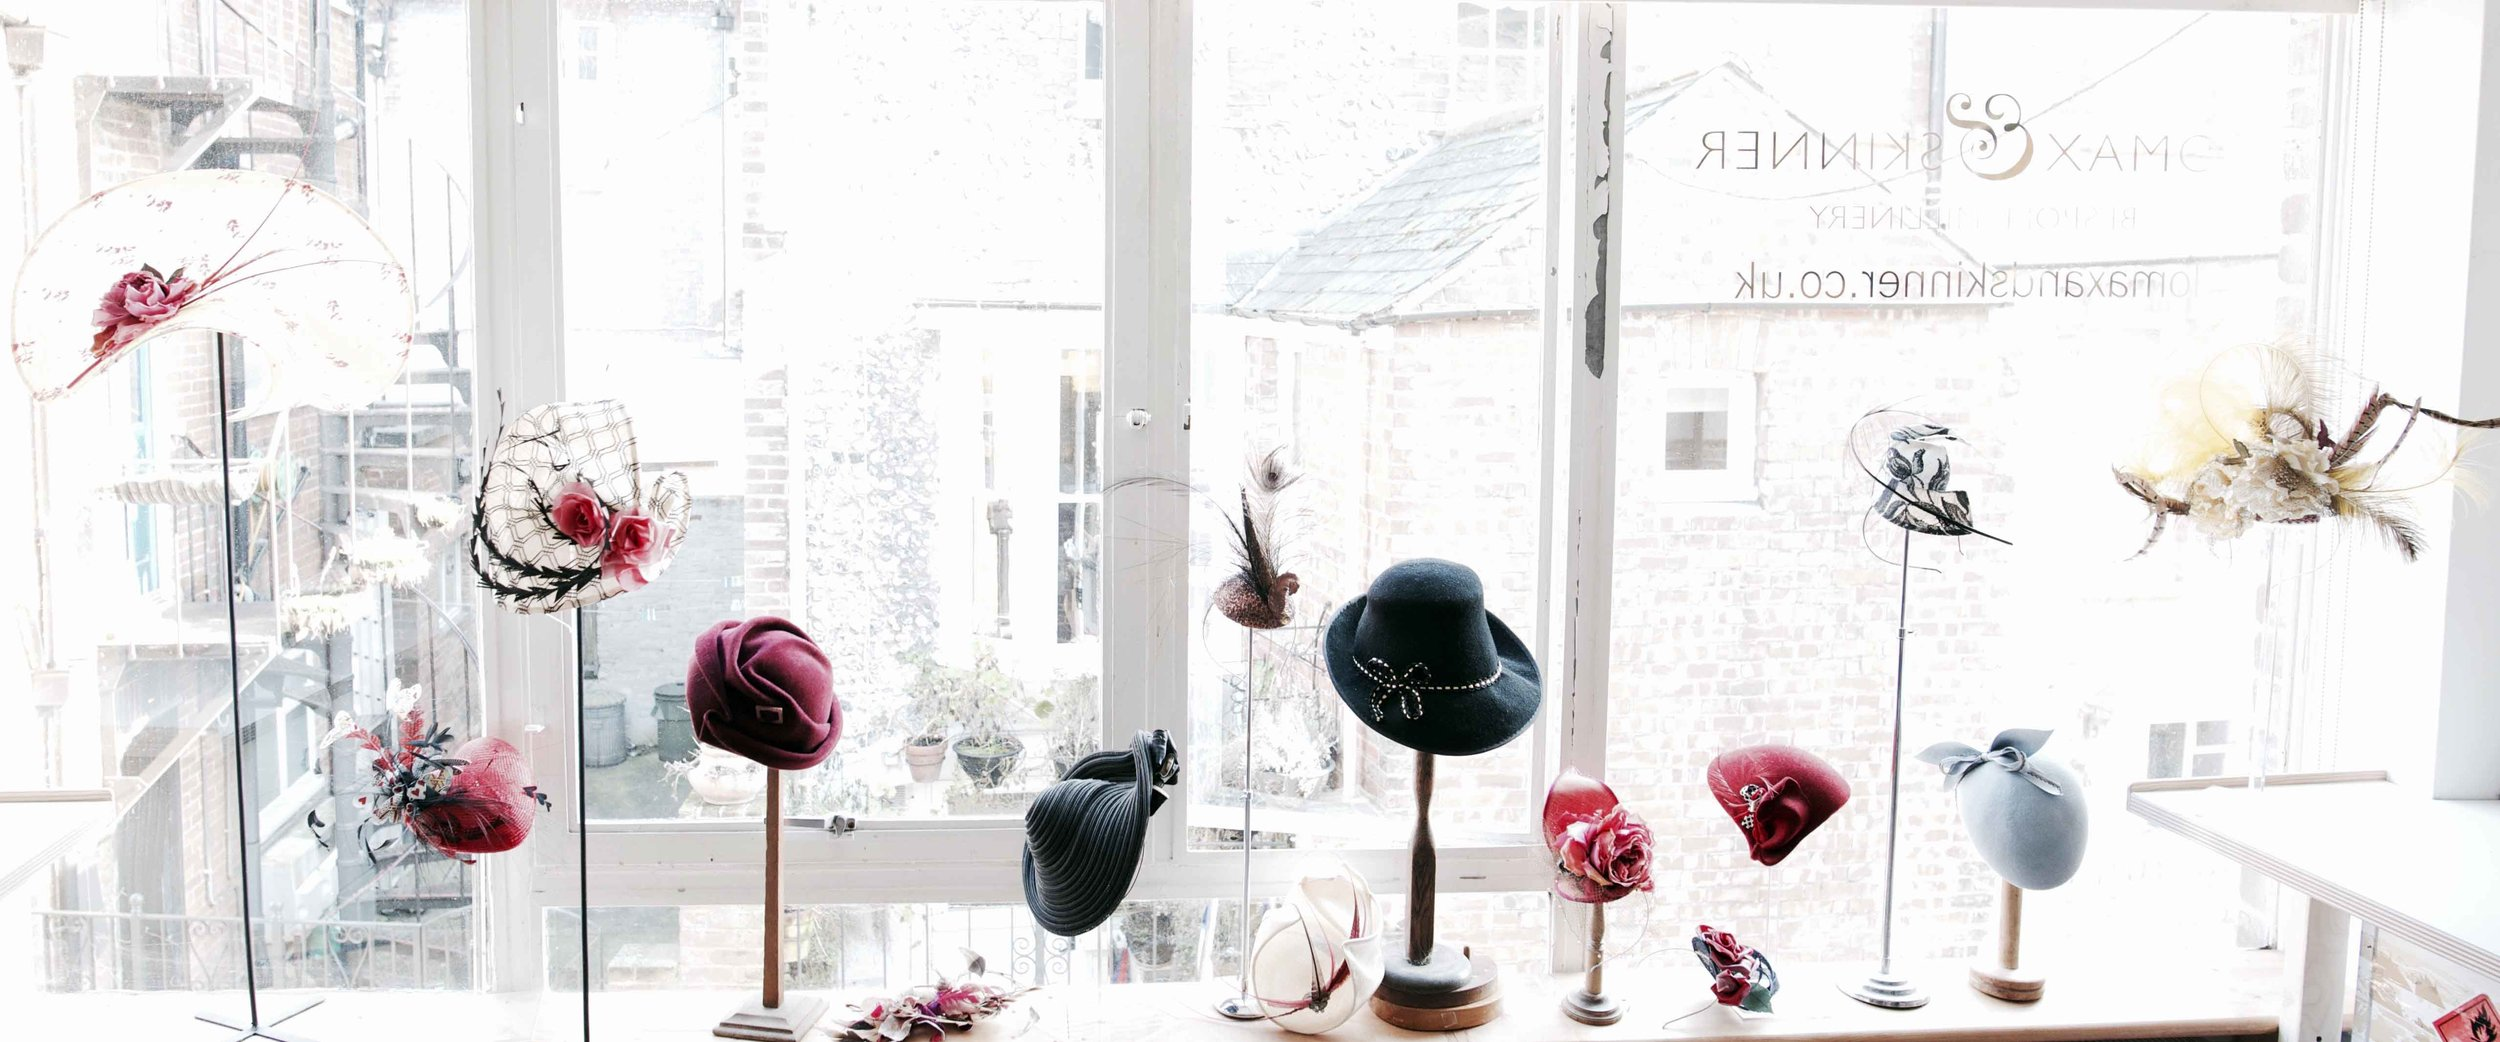 Lomax and Skinner fine millinery in Sussex